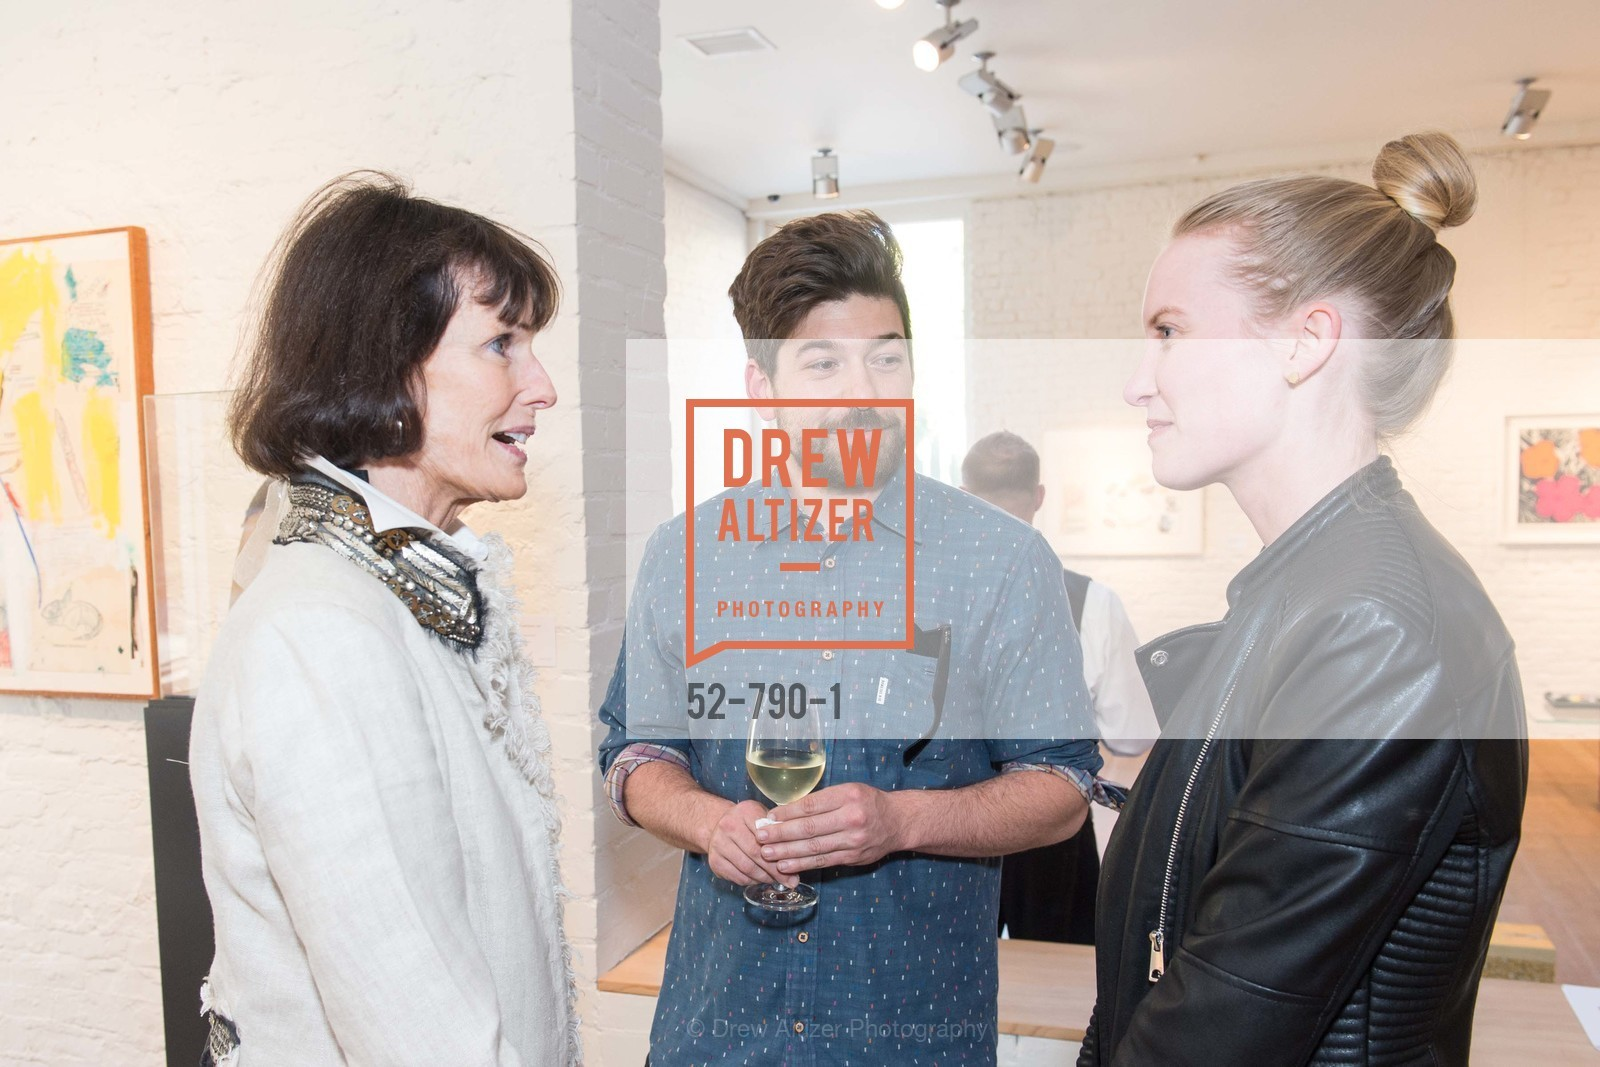 Sharon Wick, Andrew Mcclintock, Leigh Cooper, Post War and Contemporary Preview at HEDGE GALLERY, US, April 16th, 2015,Drew Altizer, Drew Altizer Photography, full-service agency, private events, San Francisco photographer, photographer california